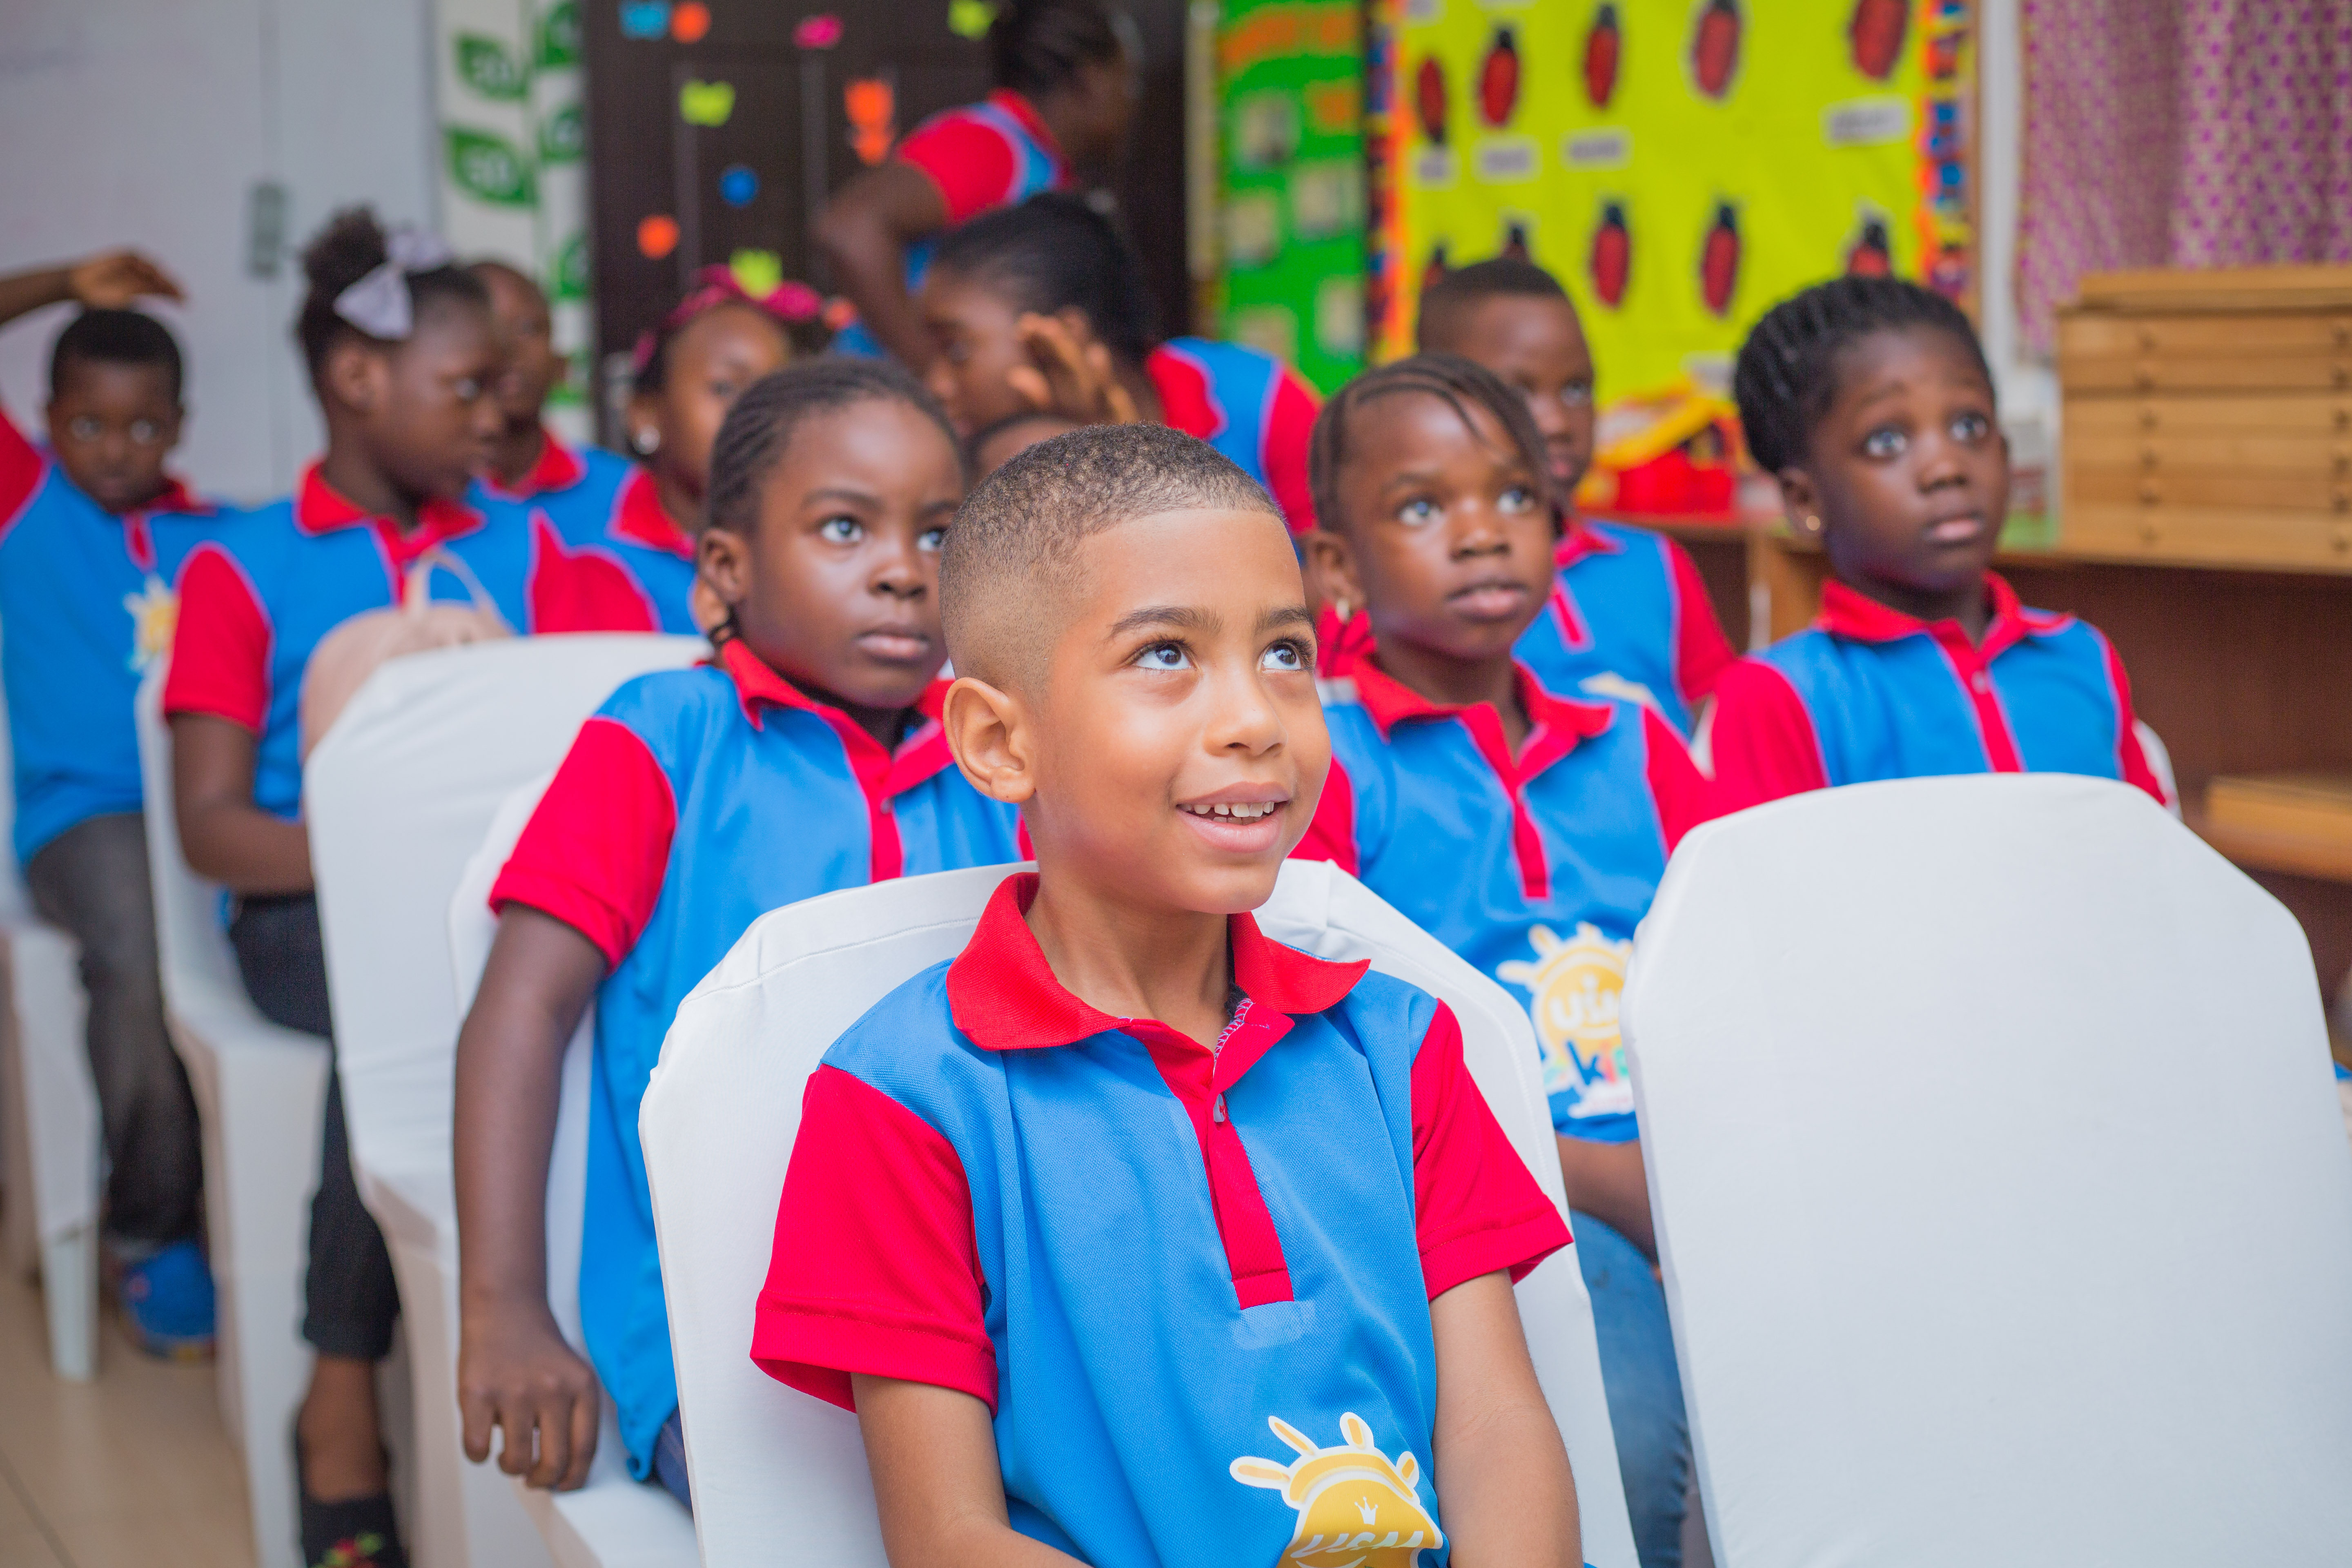 The USM Company launches Educative Children's Channel on Youtube